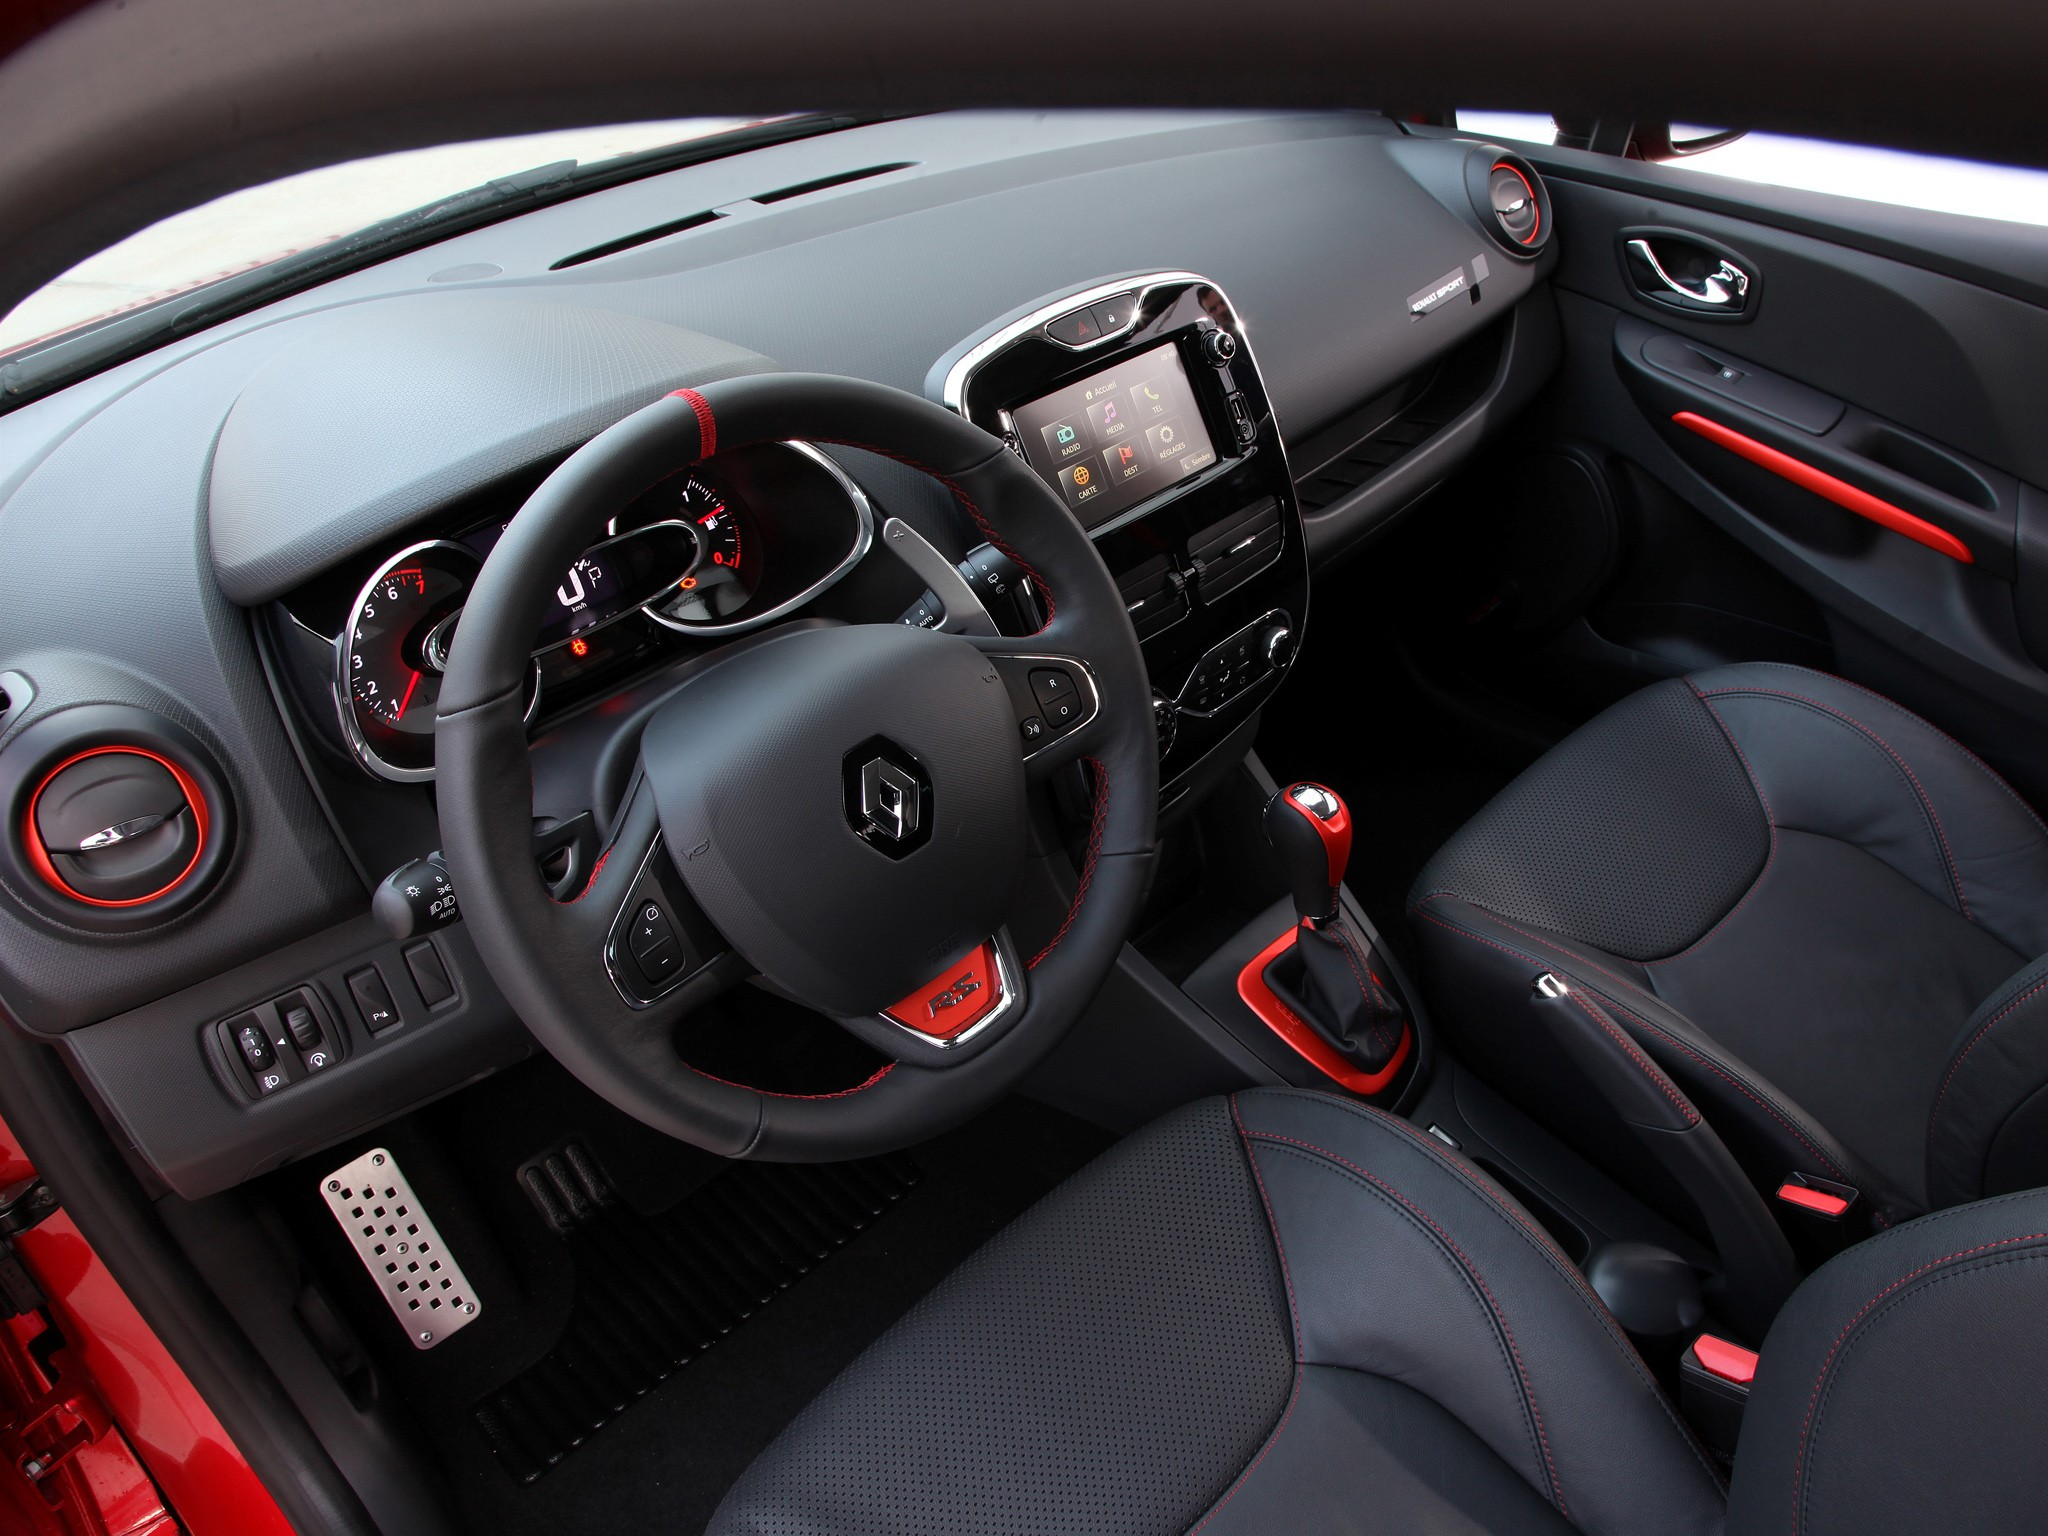 renault clio rs specs 2013 2014 2015 2016 2017 2018. Black Bedroom Furniture Sets. Home Design Ideas